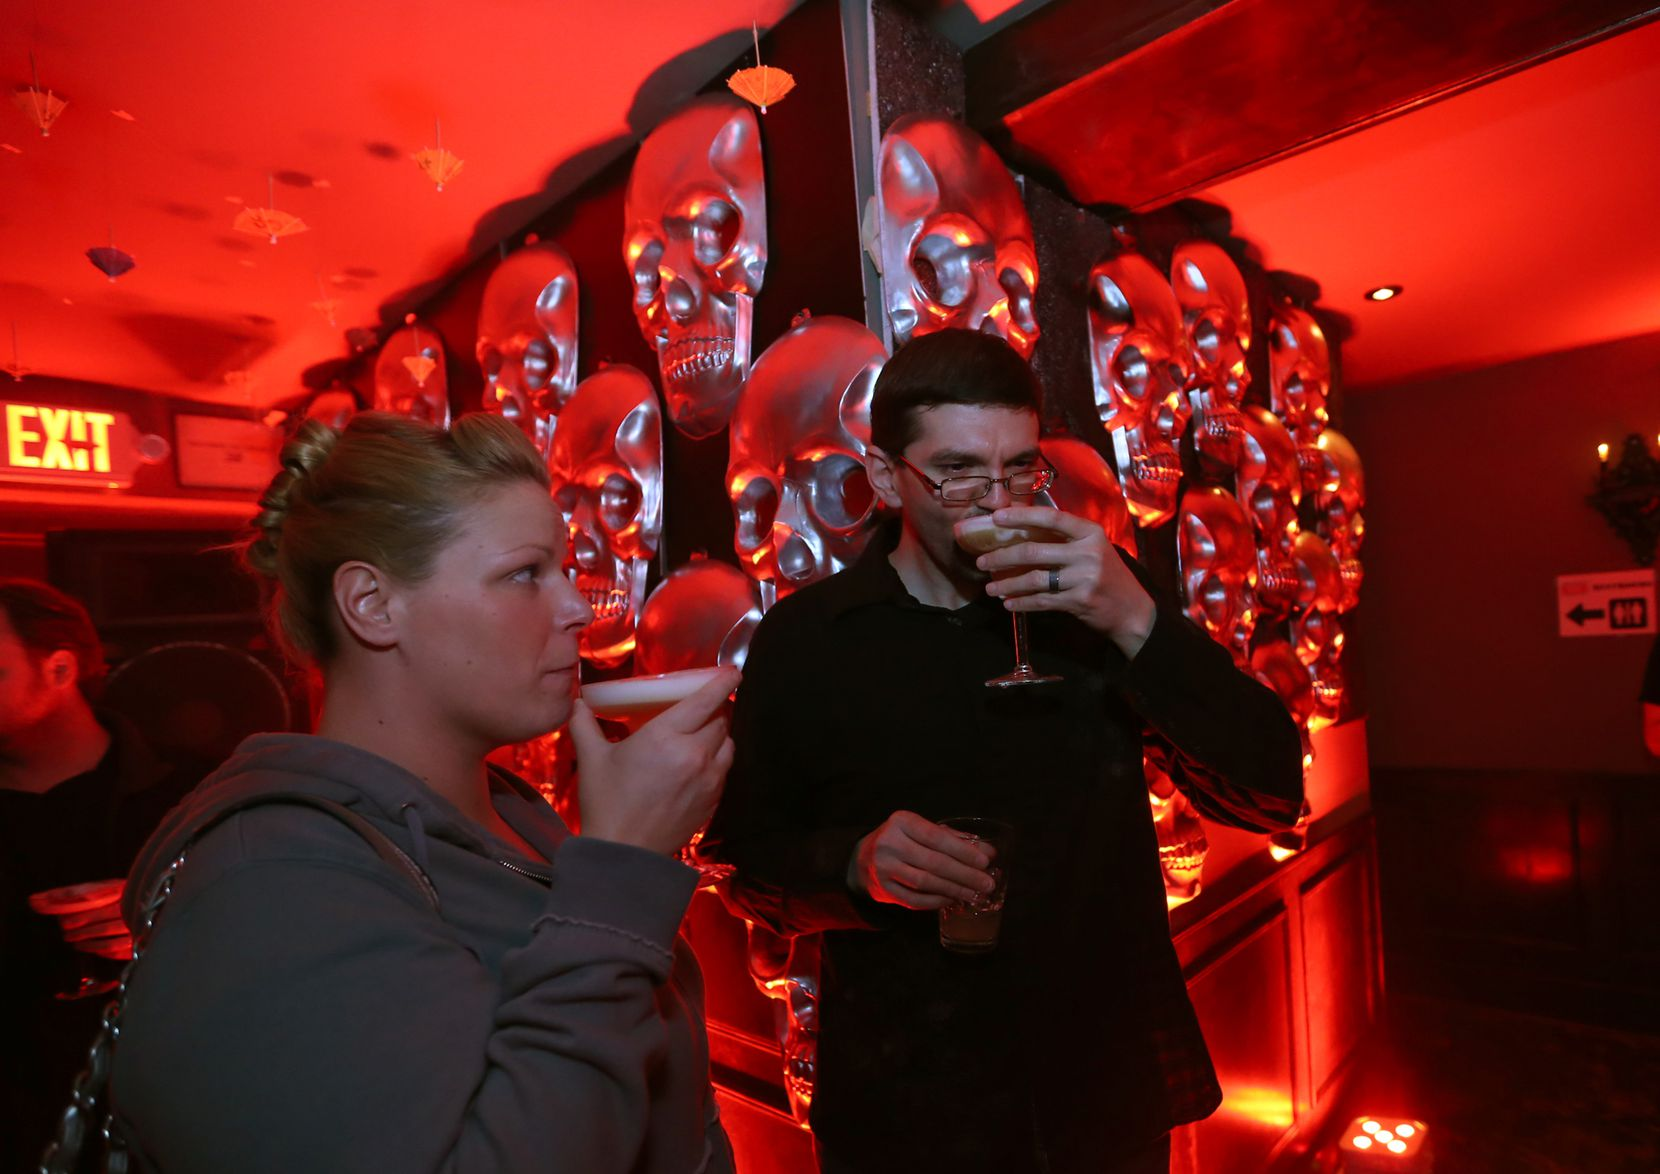 Lynn and Shawn Guenther drink in the pop-up Botty Bar & Half Mast Tiki Lounge at Henry's Majestic  during a Trigger's Toys event in 2014.